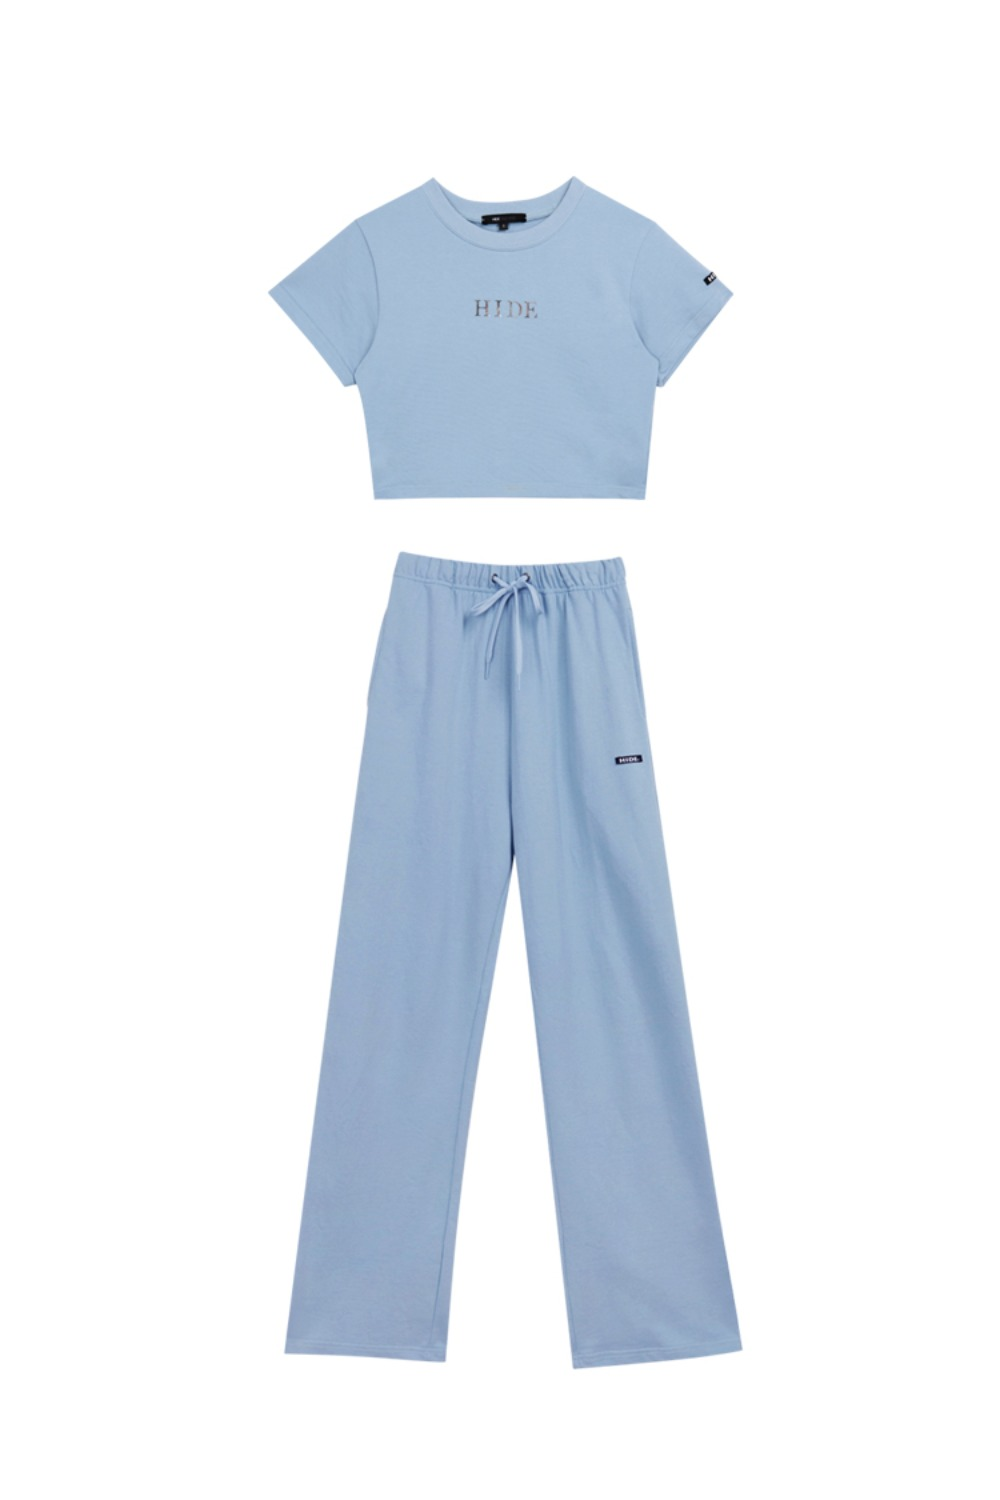 HIDE Mirror Crop Top & Wide Pants SKY BLUE